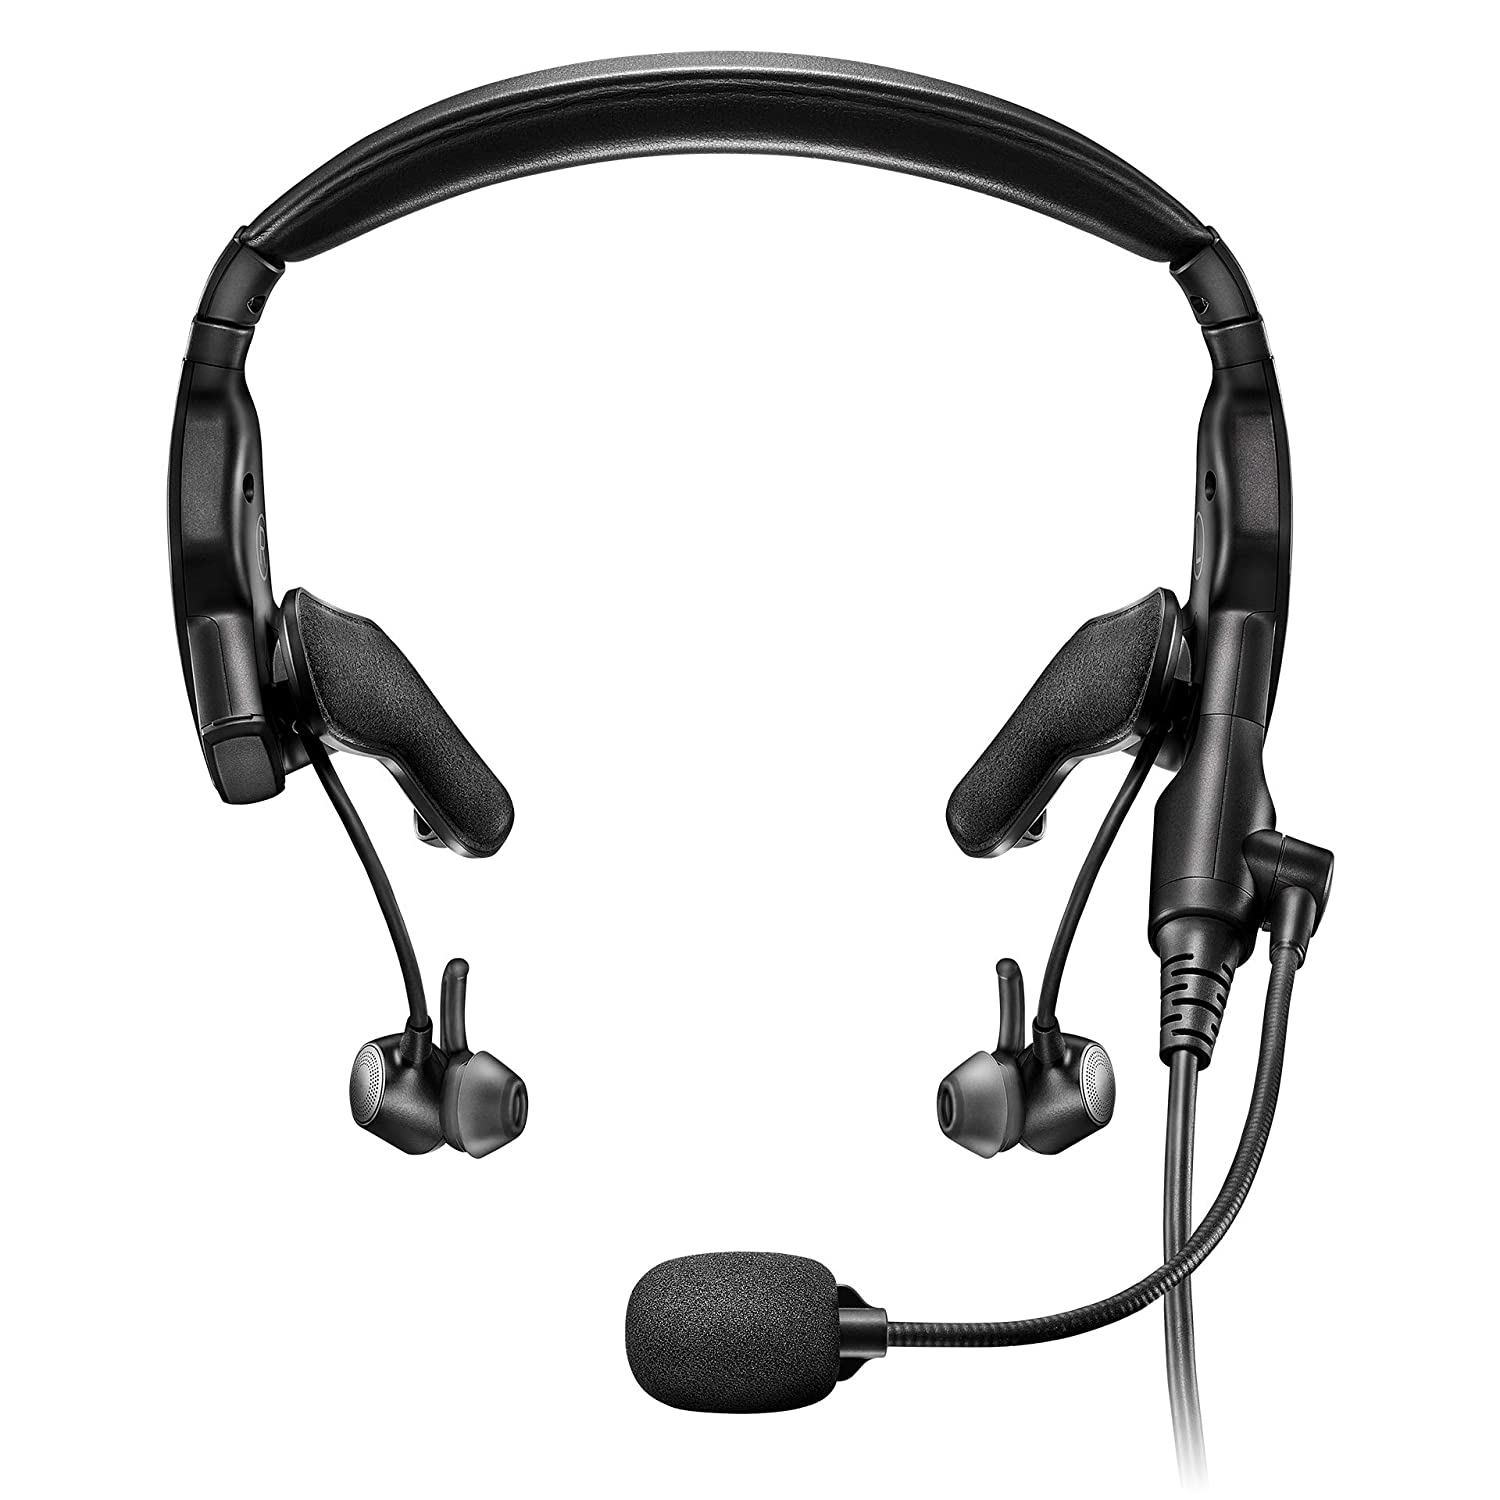 Bose Proflight Series 2 Aviation Headset with Bluetooth Connectivity, 5 Pin XLR Cable, Black